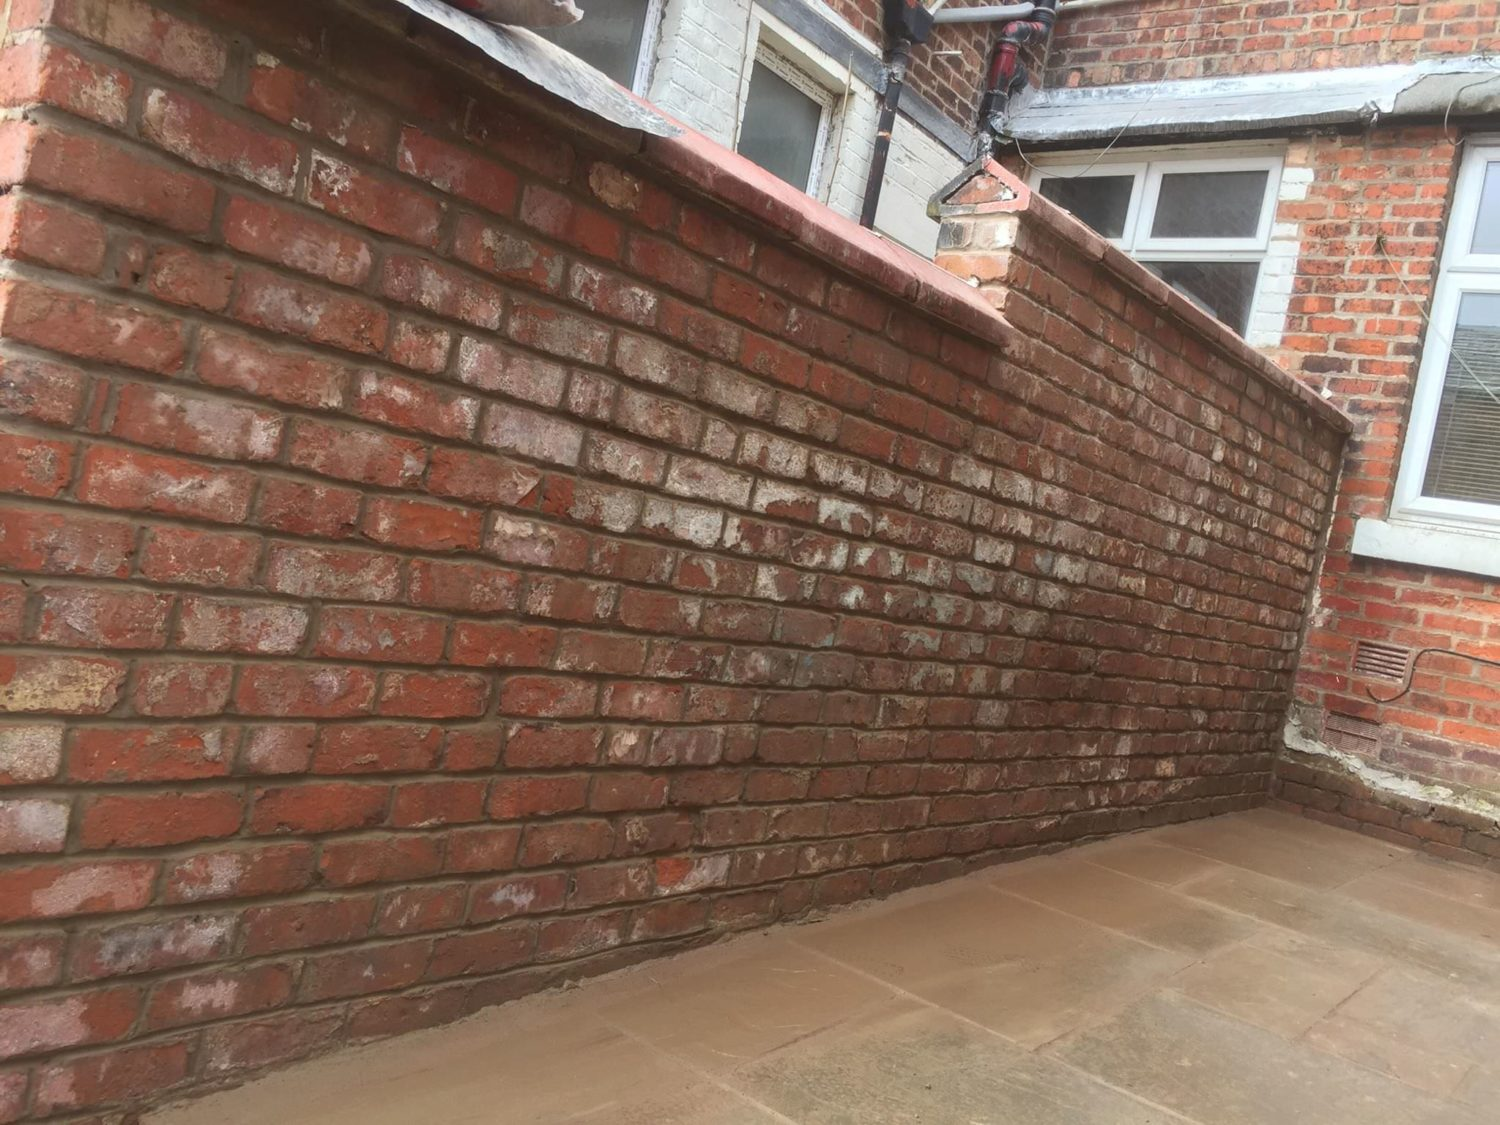 lancashire Pointing Services is a professional repointing